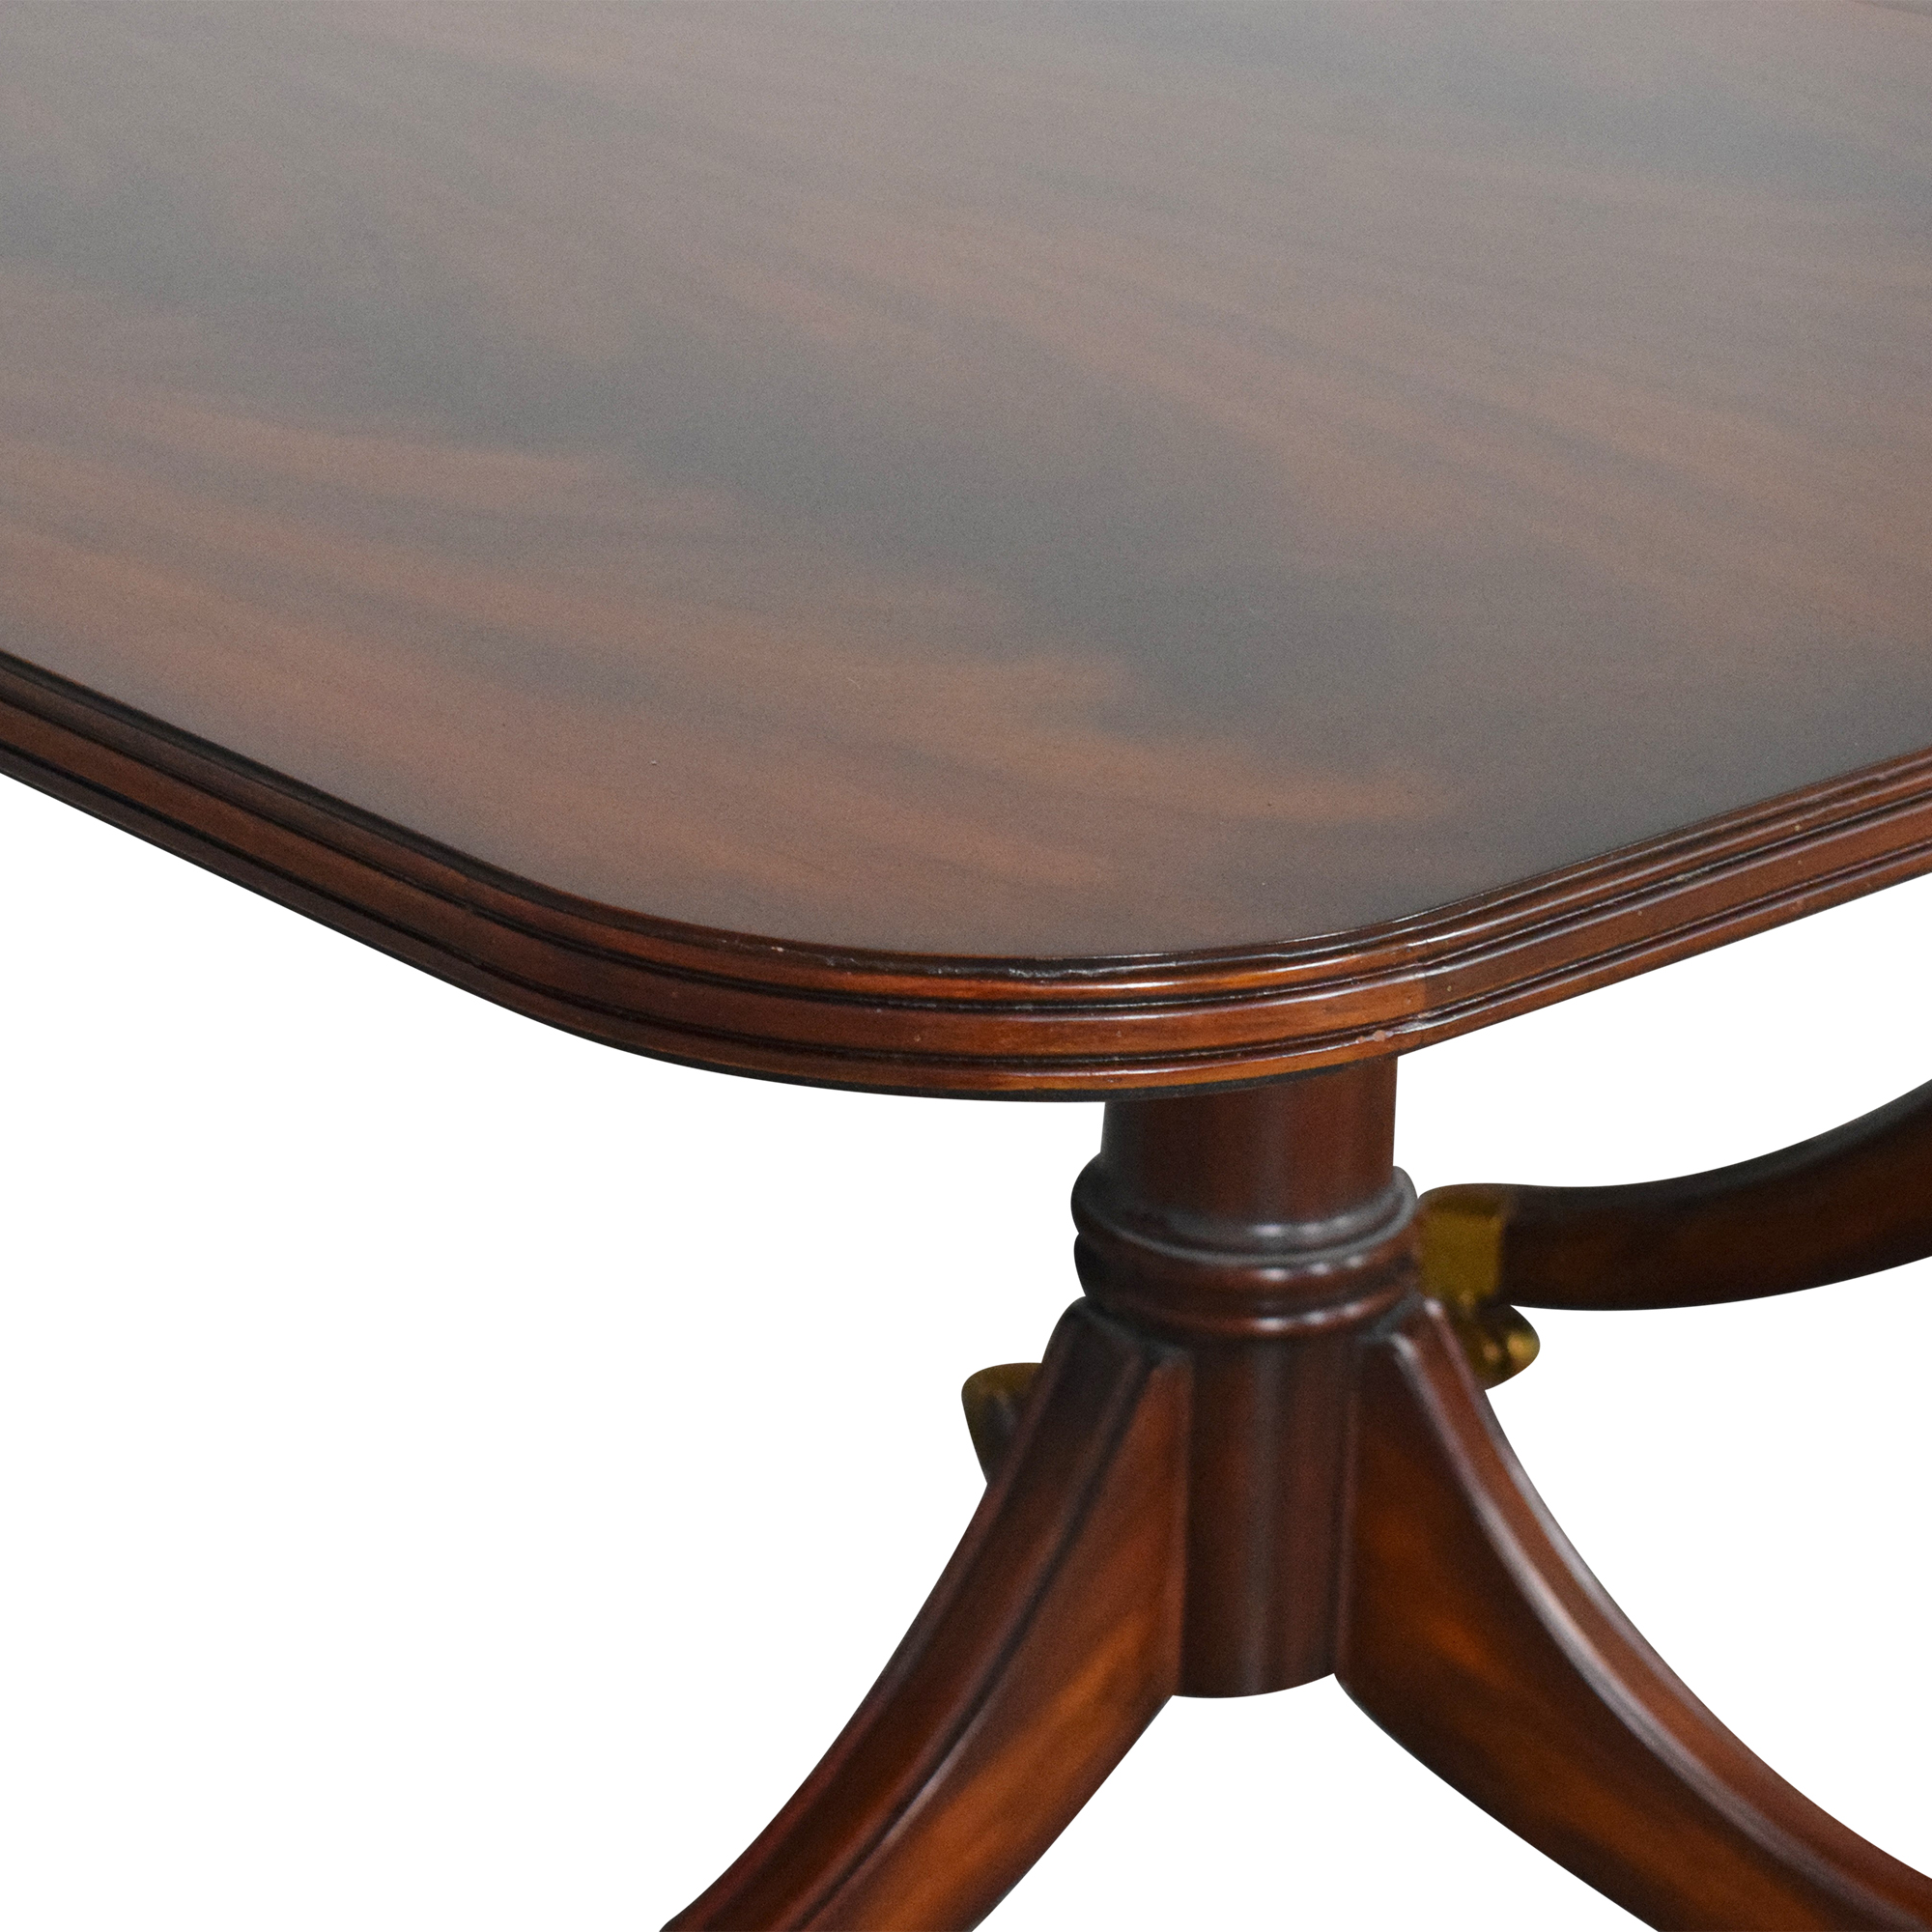 Maitland-Smith Maitland-Smith Double Pedestal Extendable Dining Table used